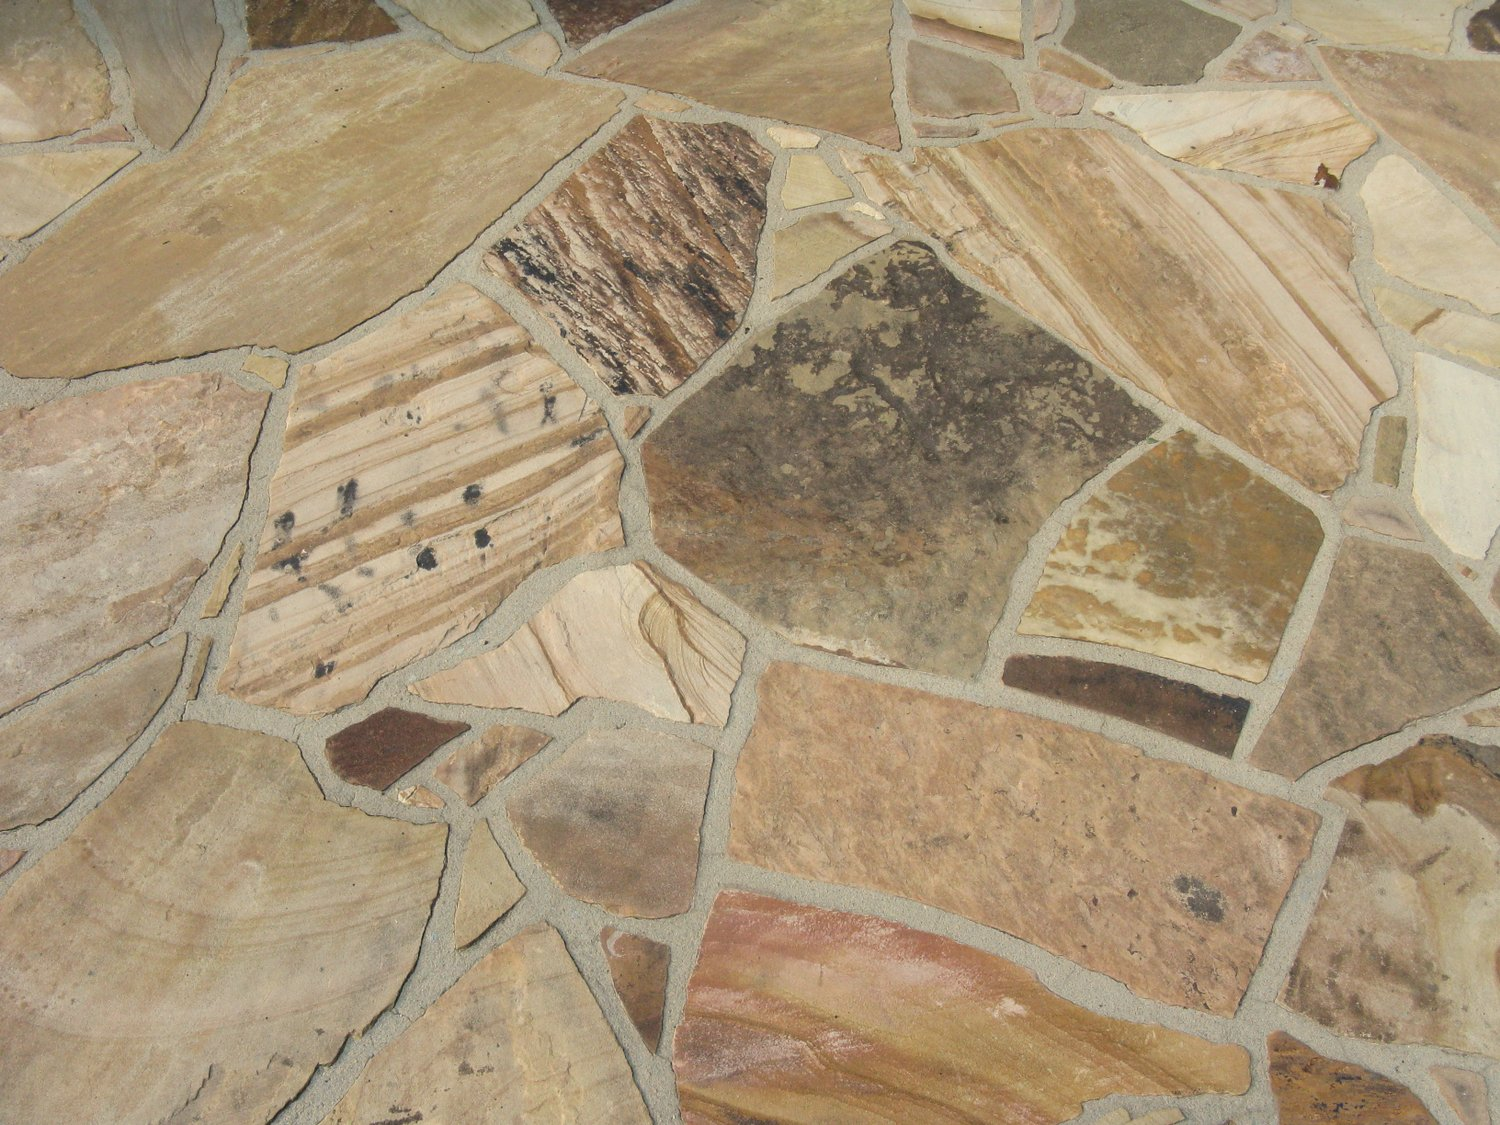 Mortar joints on this patio are small, flat and consistent in size.